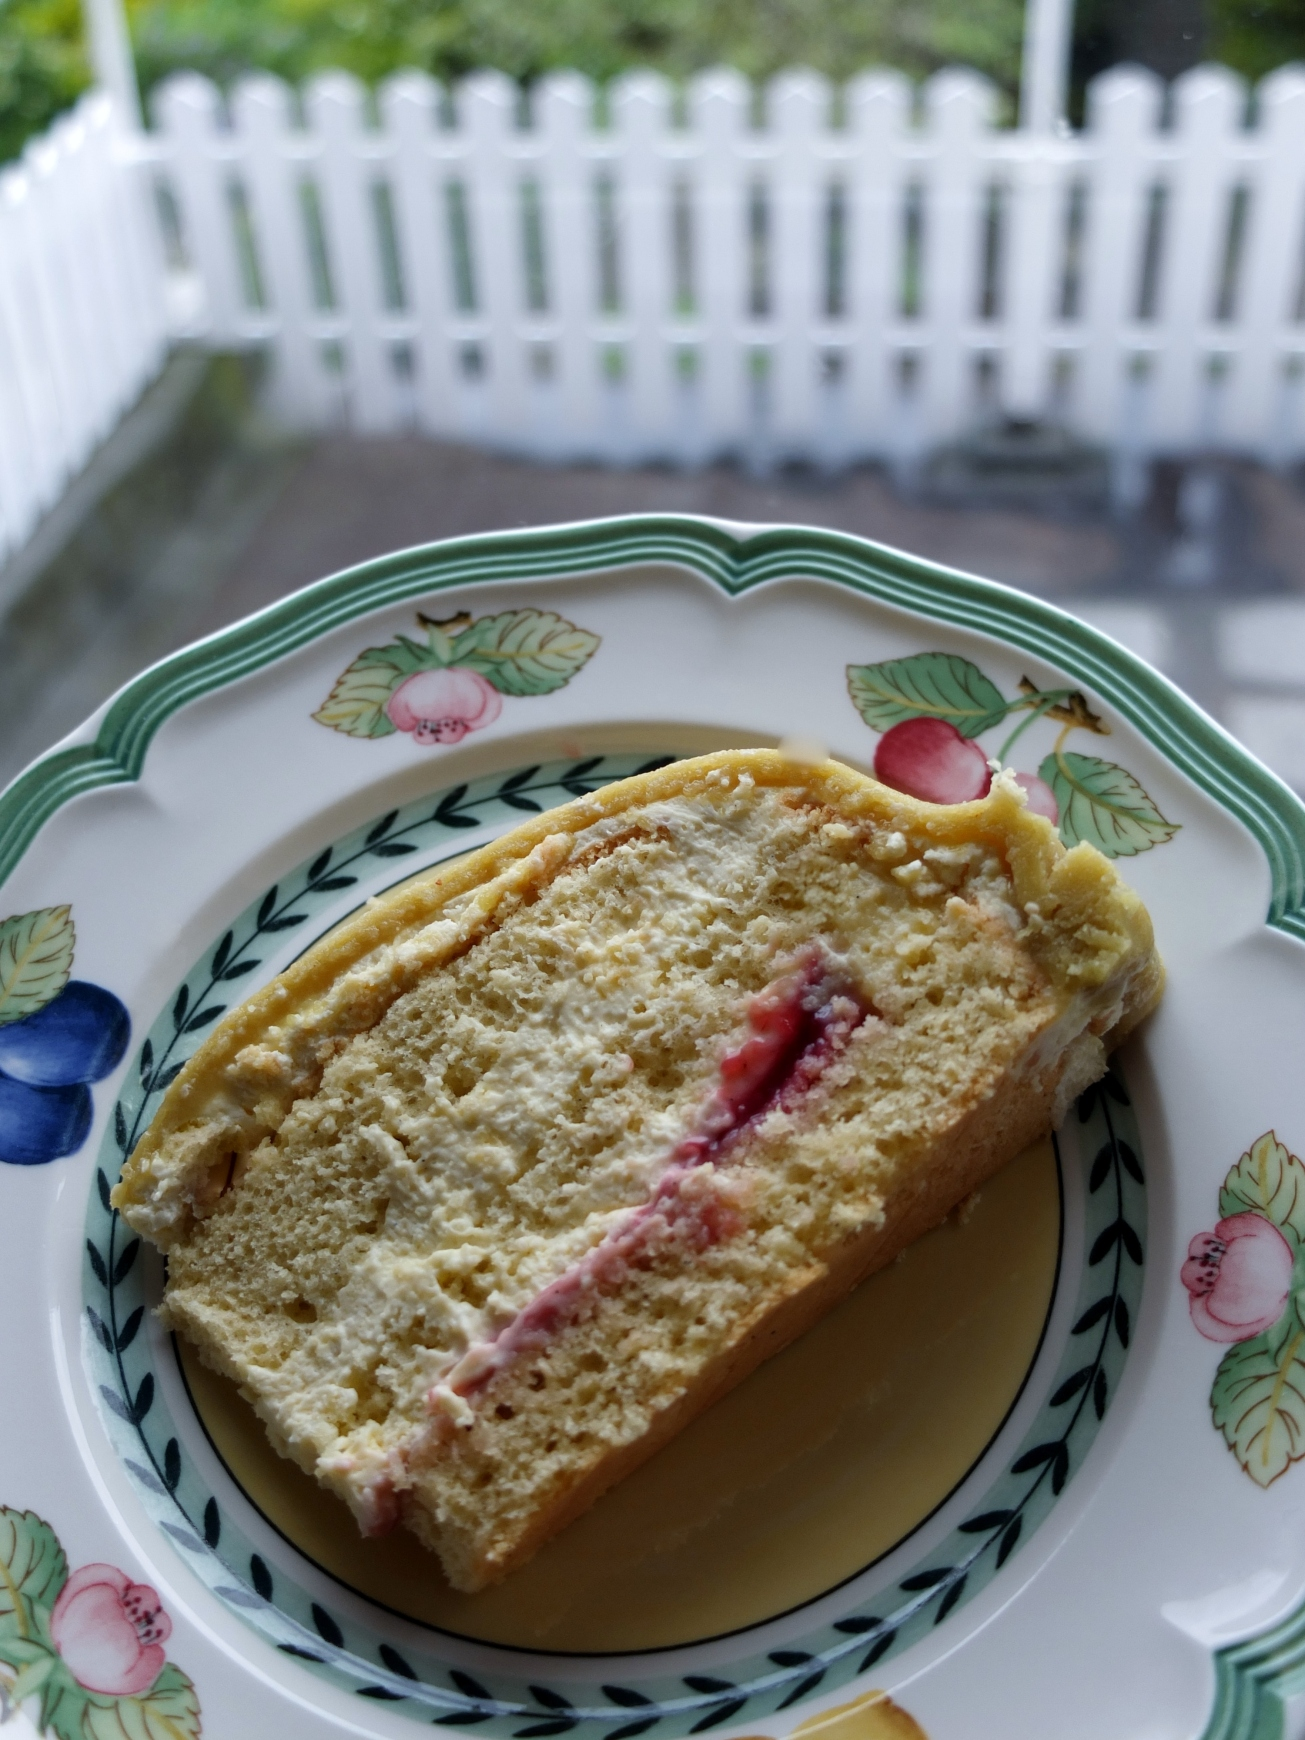 A slice of princess cake